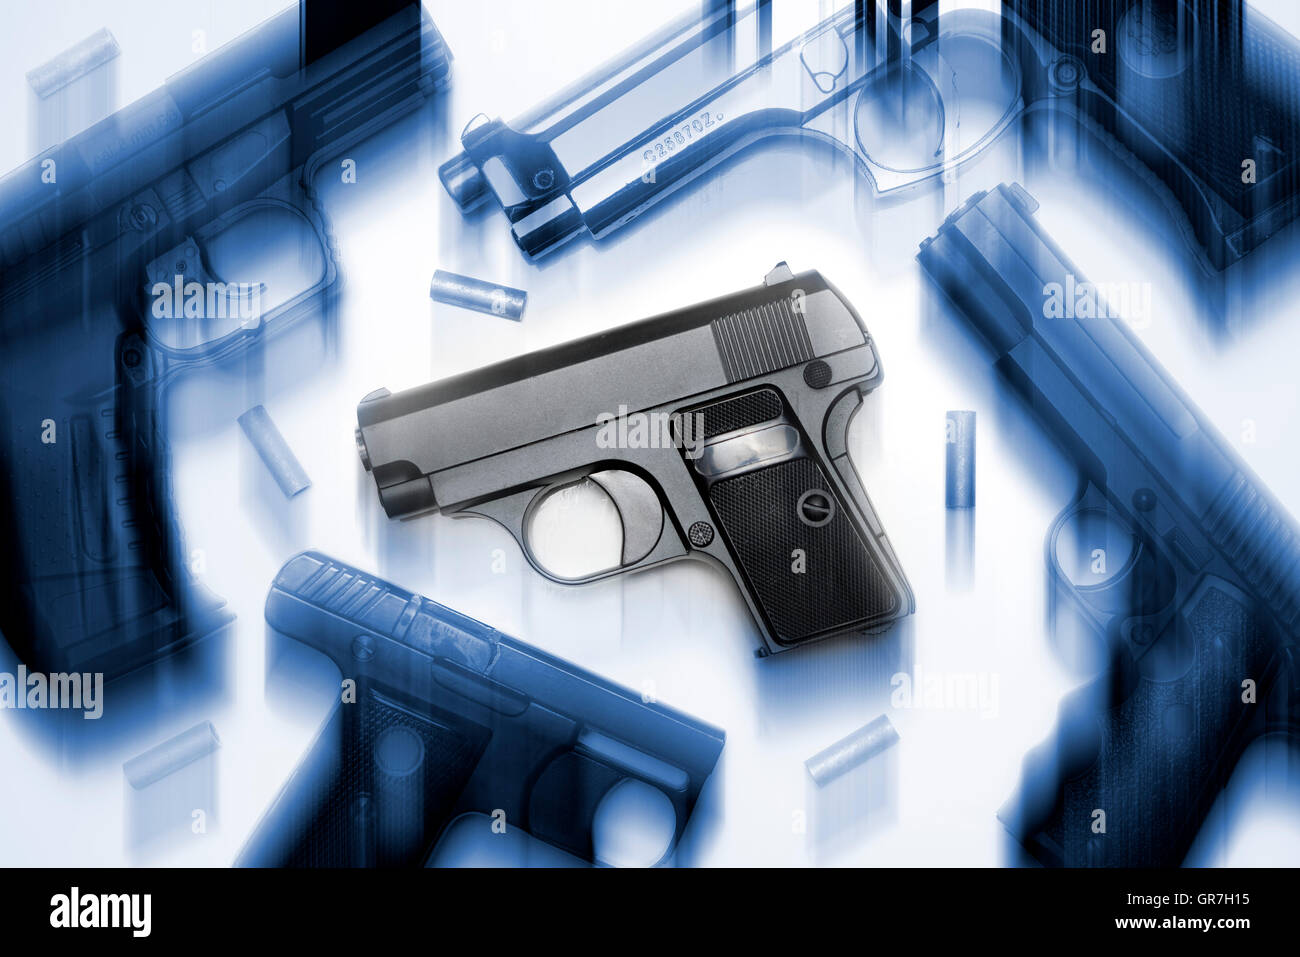 Gas Pistols And Guns - Stock Image